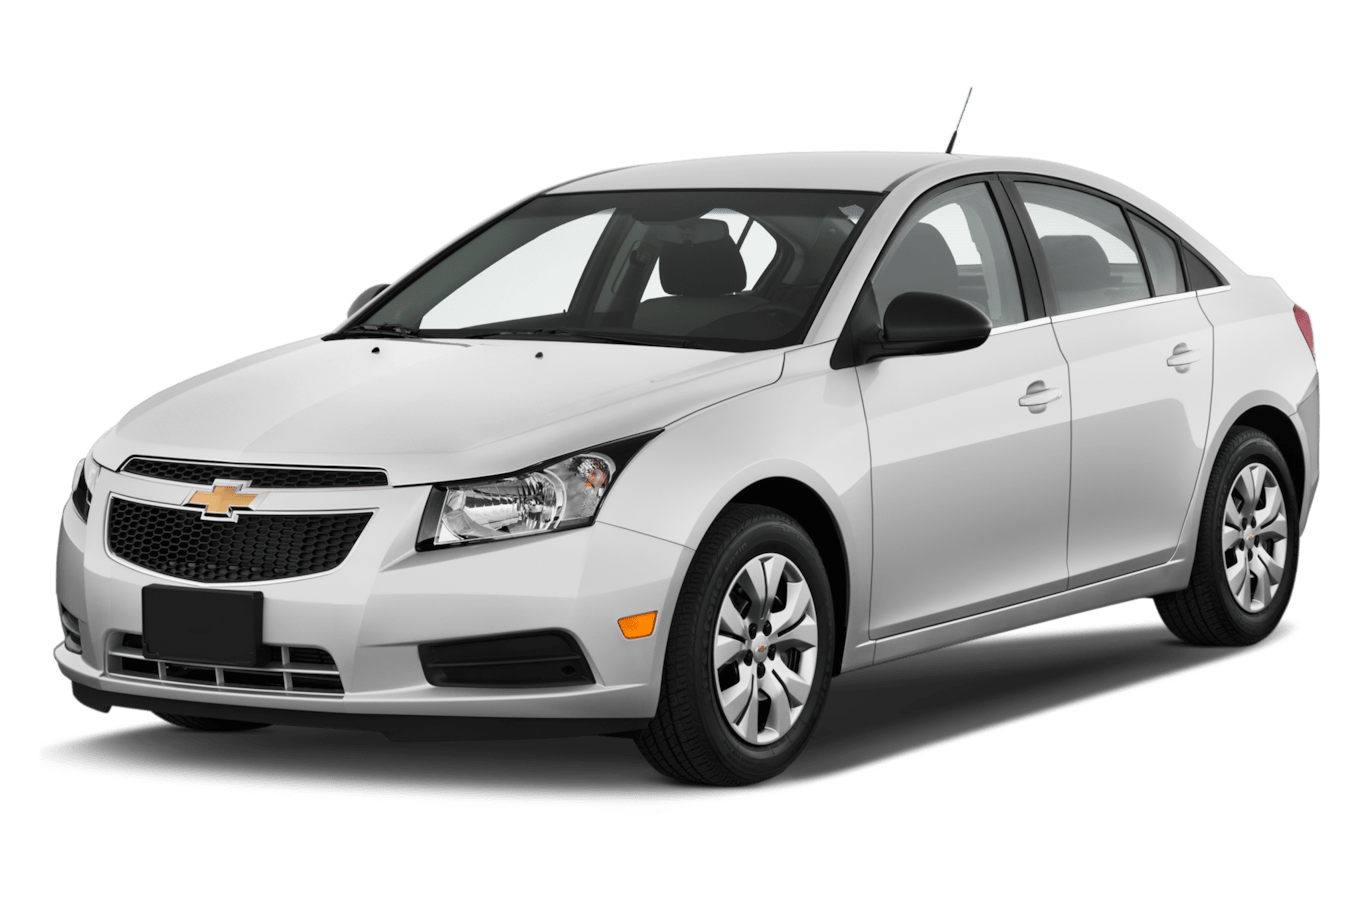 hight resolution of 2014 chevrolet cruze reviews research cruze prices specs diagram likewise chevy cruze 1 4 turbo engine in addition ecotec